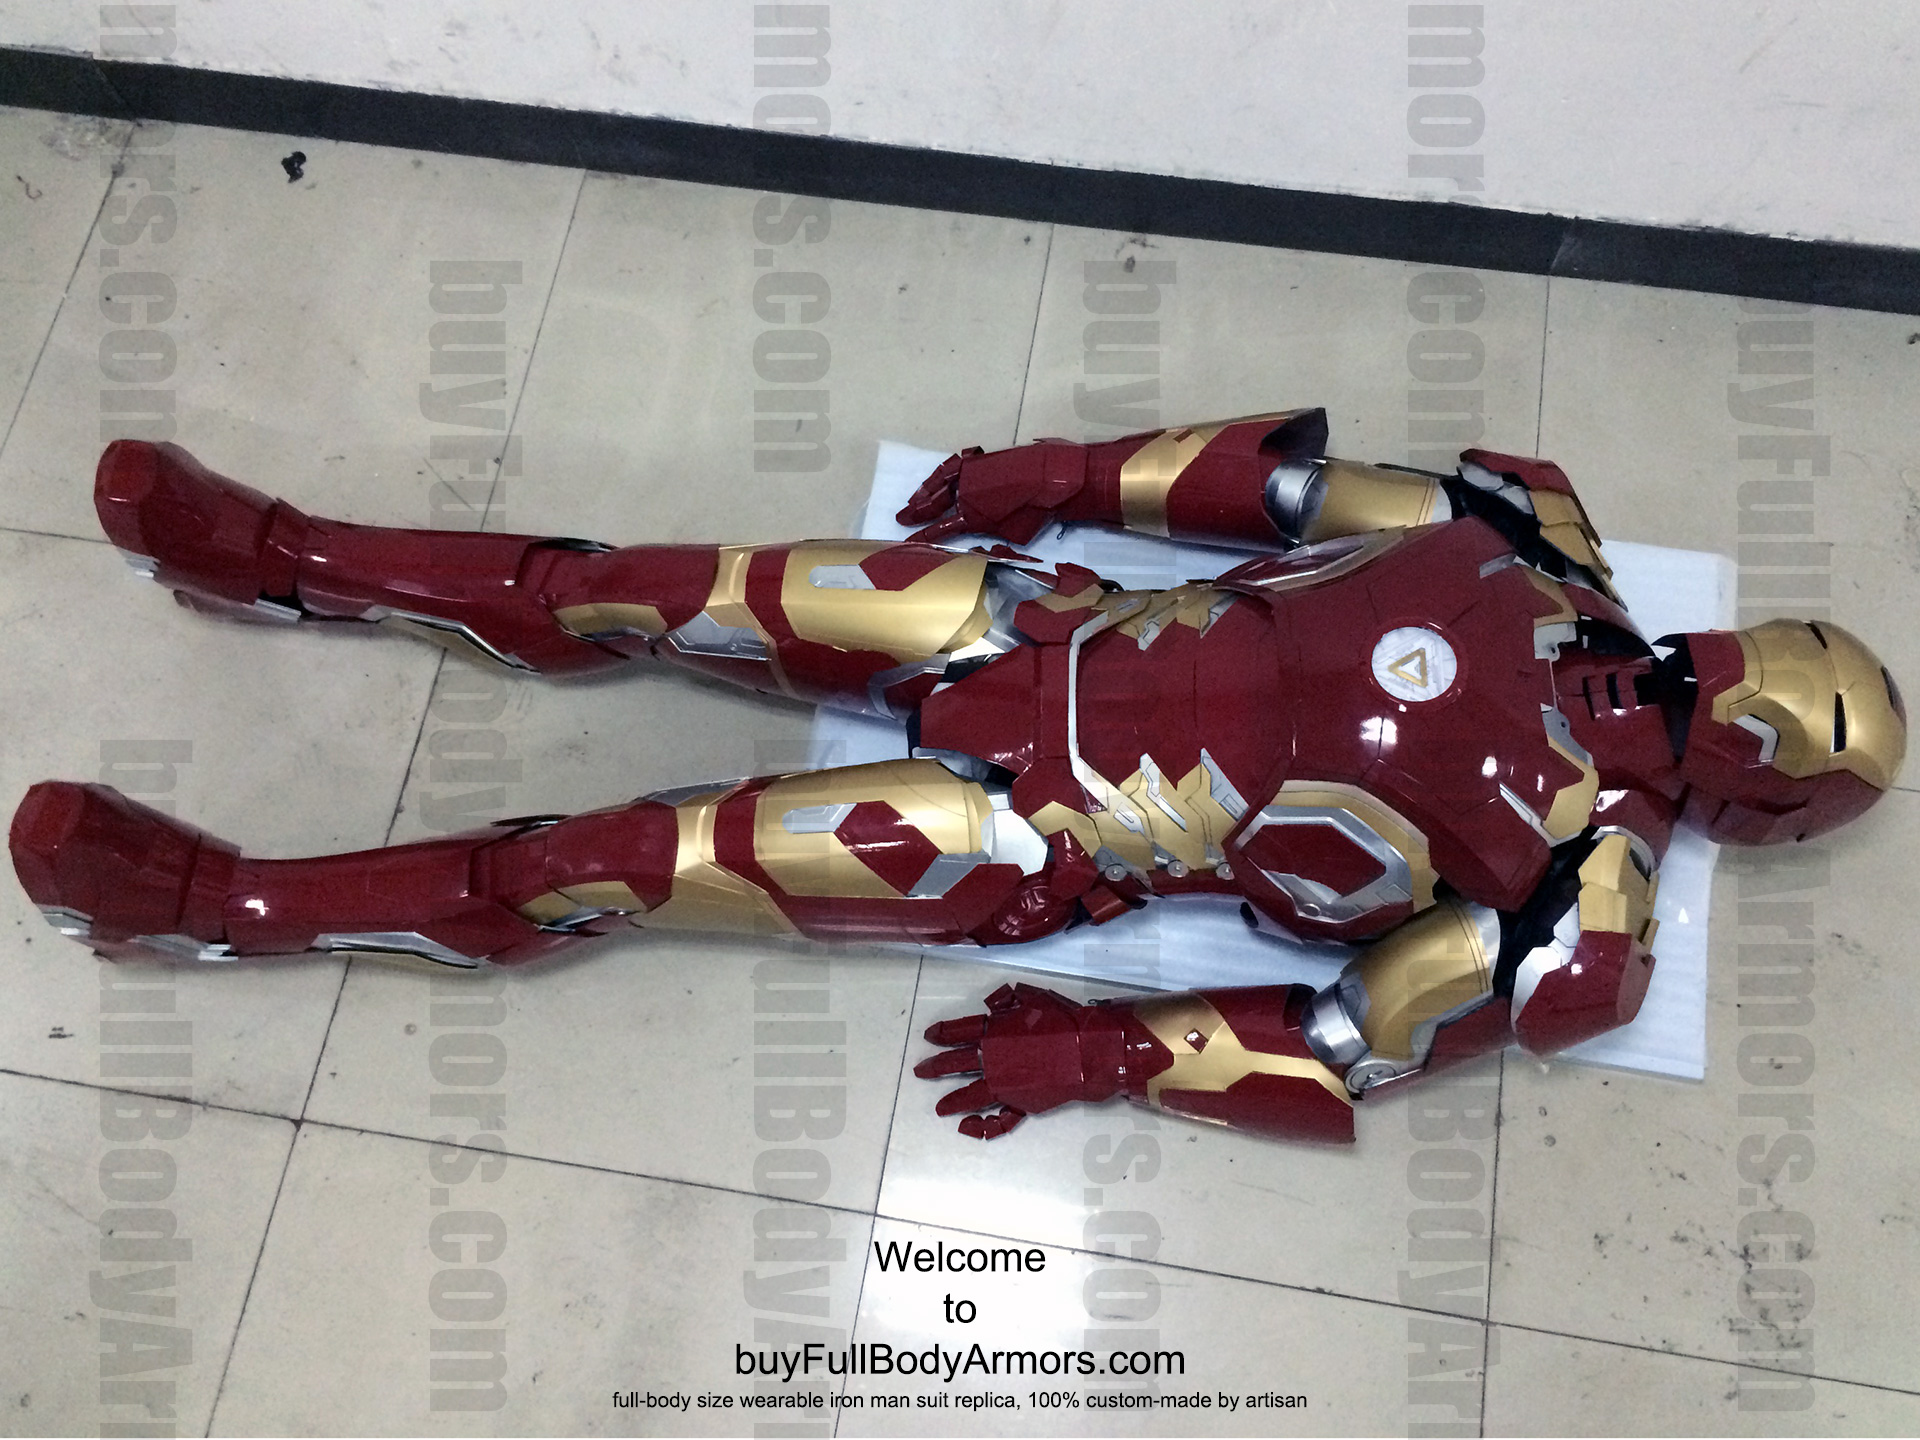 the Wearable Iron Man Mark 43 (XLIII) suit costume finished